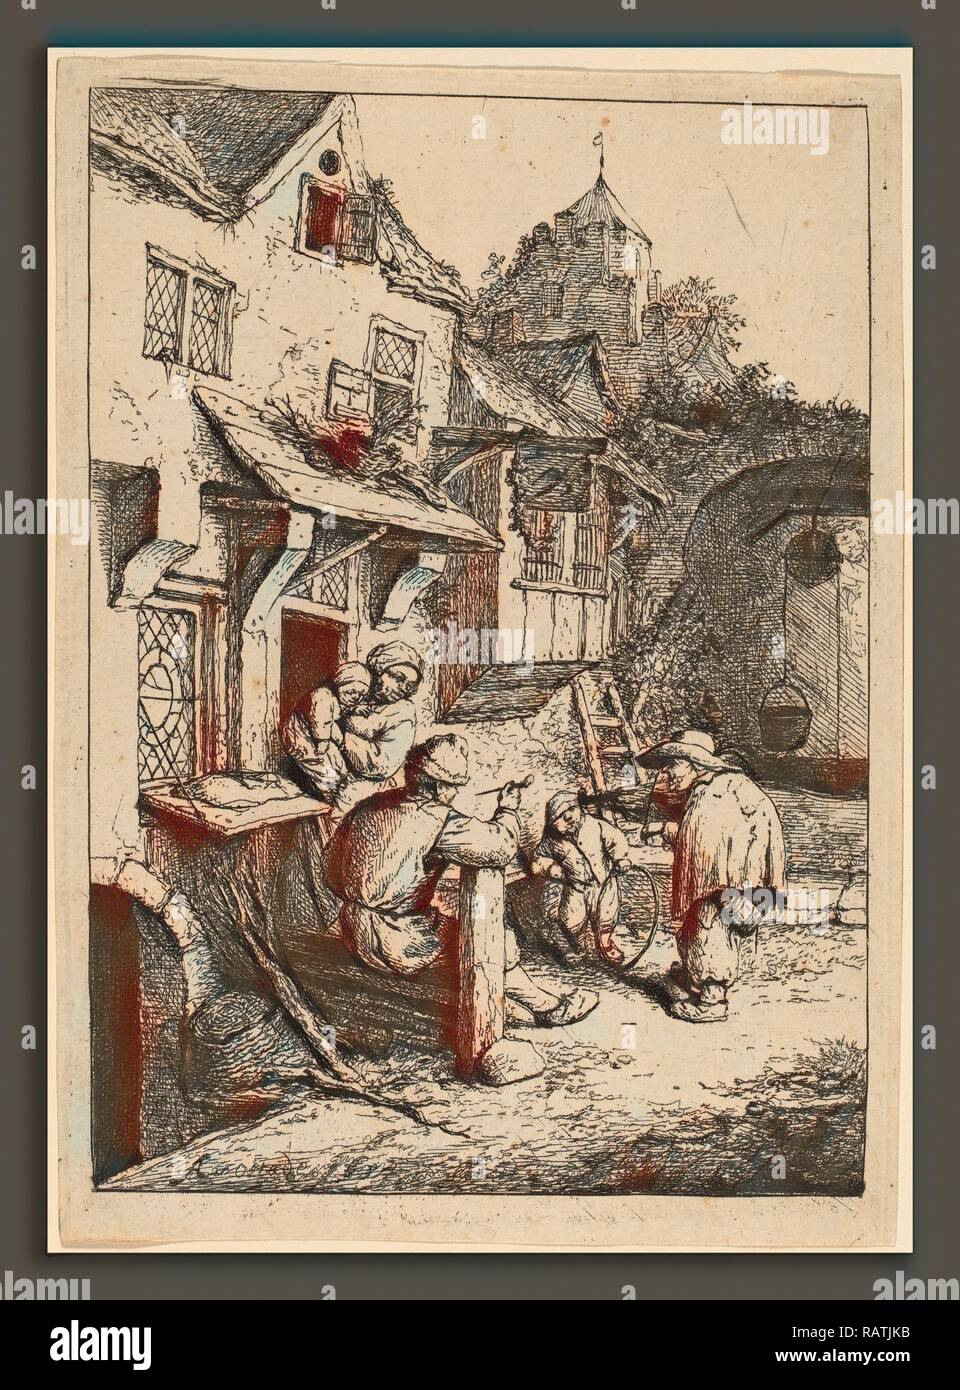 Adriaen van Ostade (Dutch, 1610 - 1685), Hunchbacked Fiddler, 1654, etching. Reimagined by Gibon. Classic art with a reimagined - Stock Image